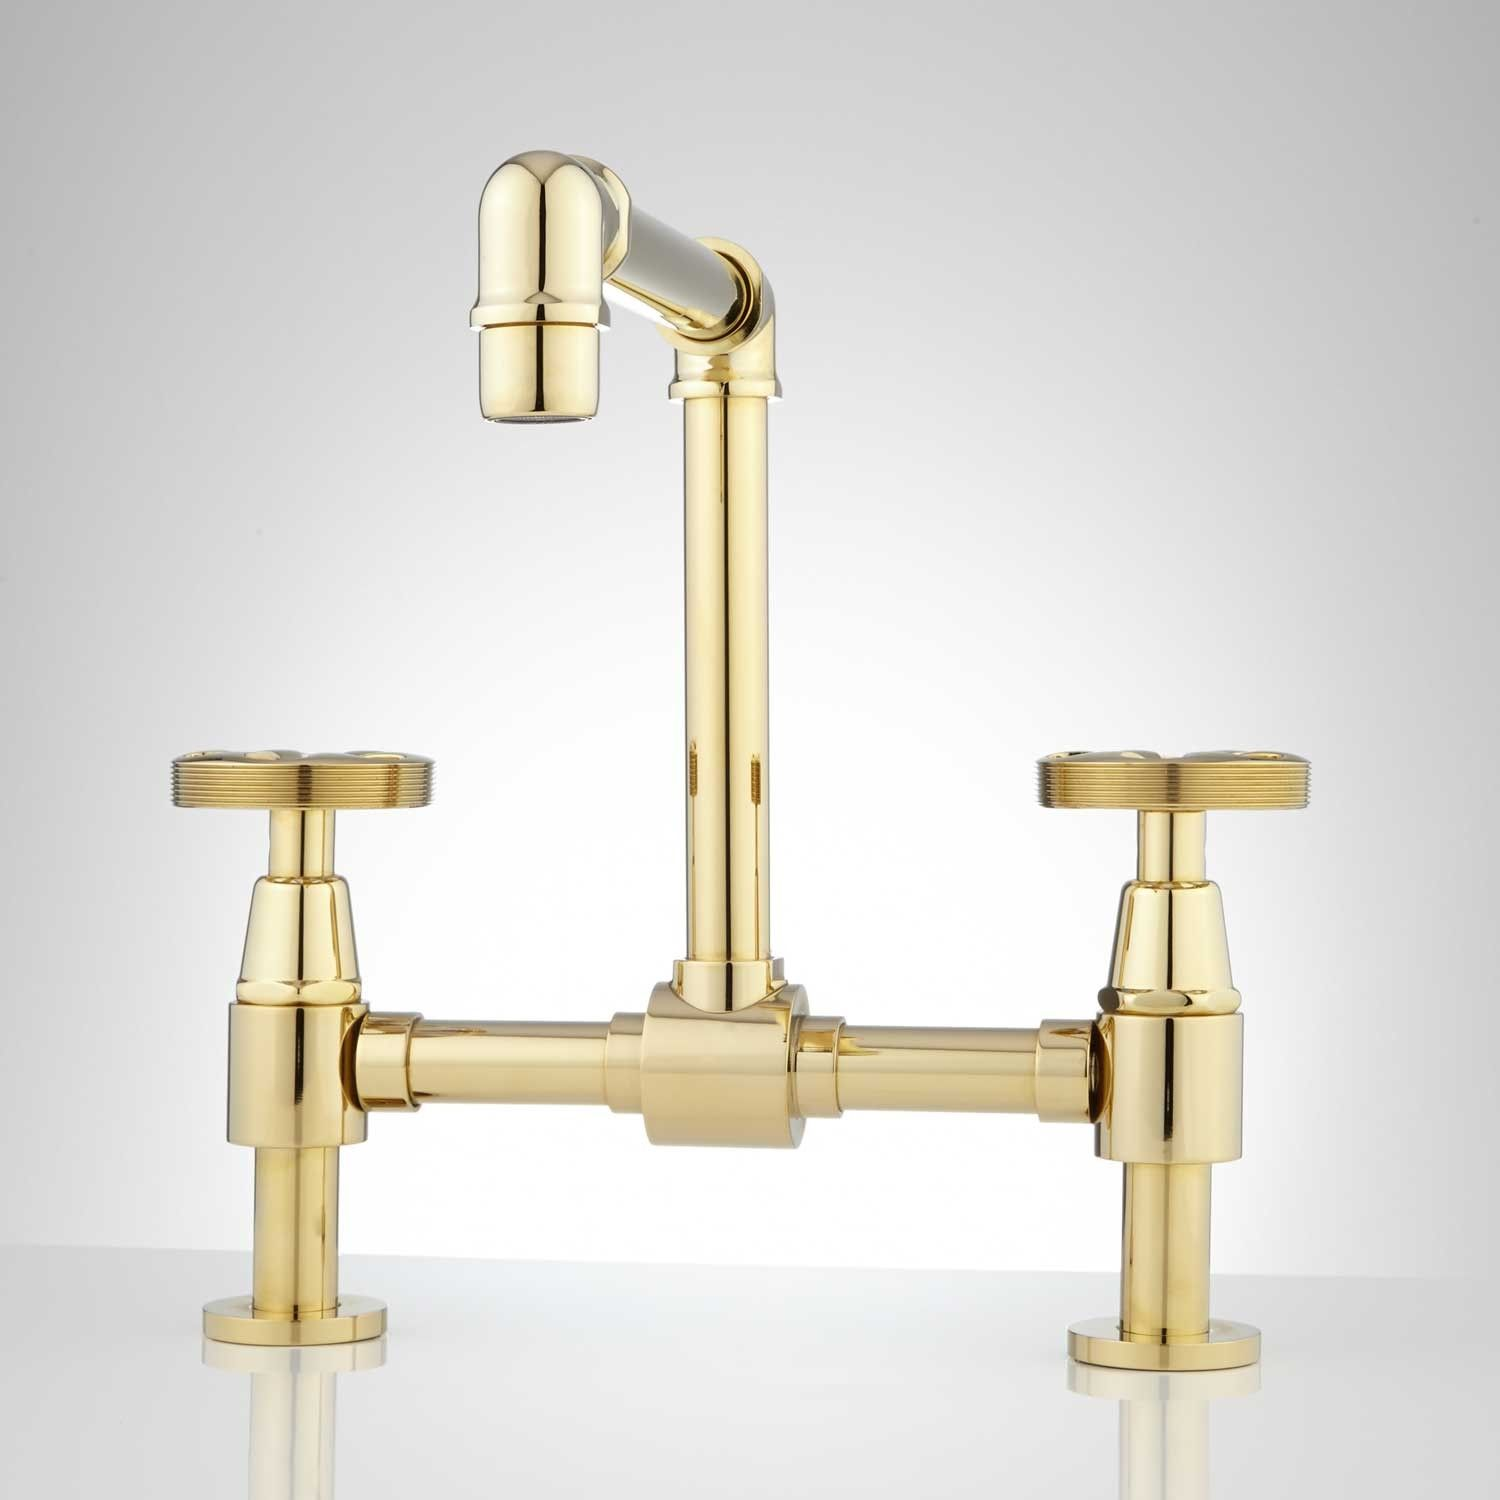 Edison Bridge Bathroom Faucet with Pop-Up Drain | Faucet, Brass ...